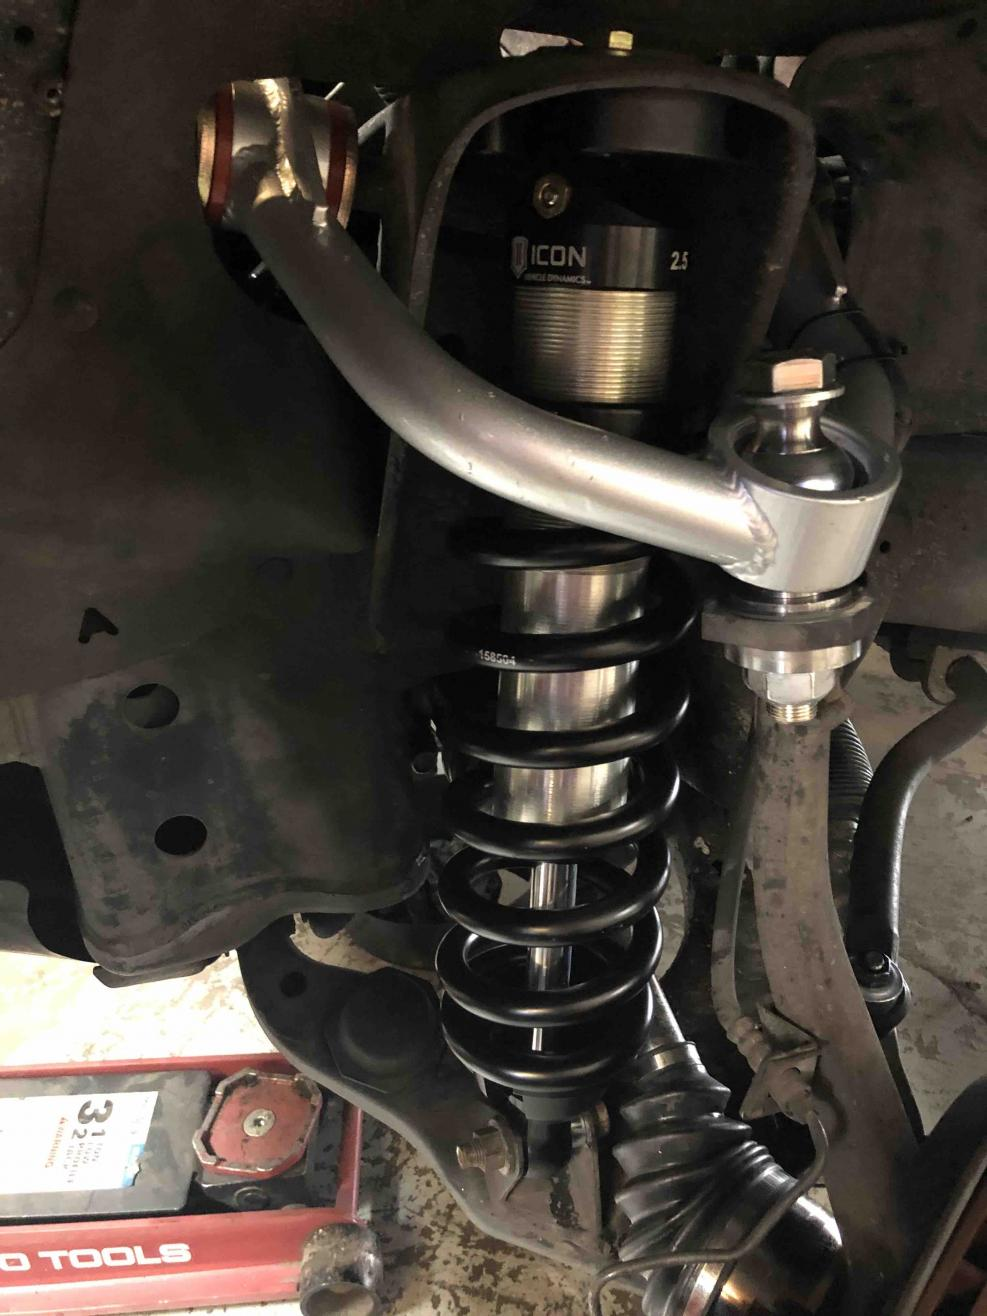 Best Suspension Upgrade for the Money-uca-icons-coilovers-jpg